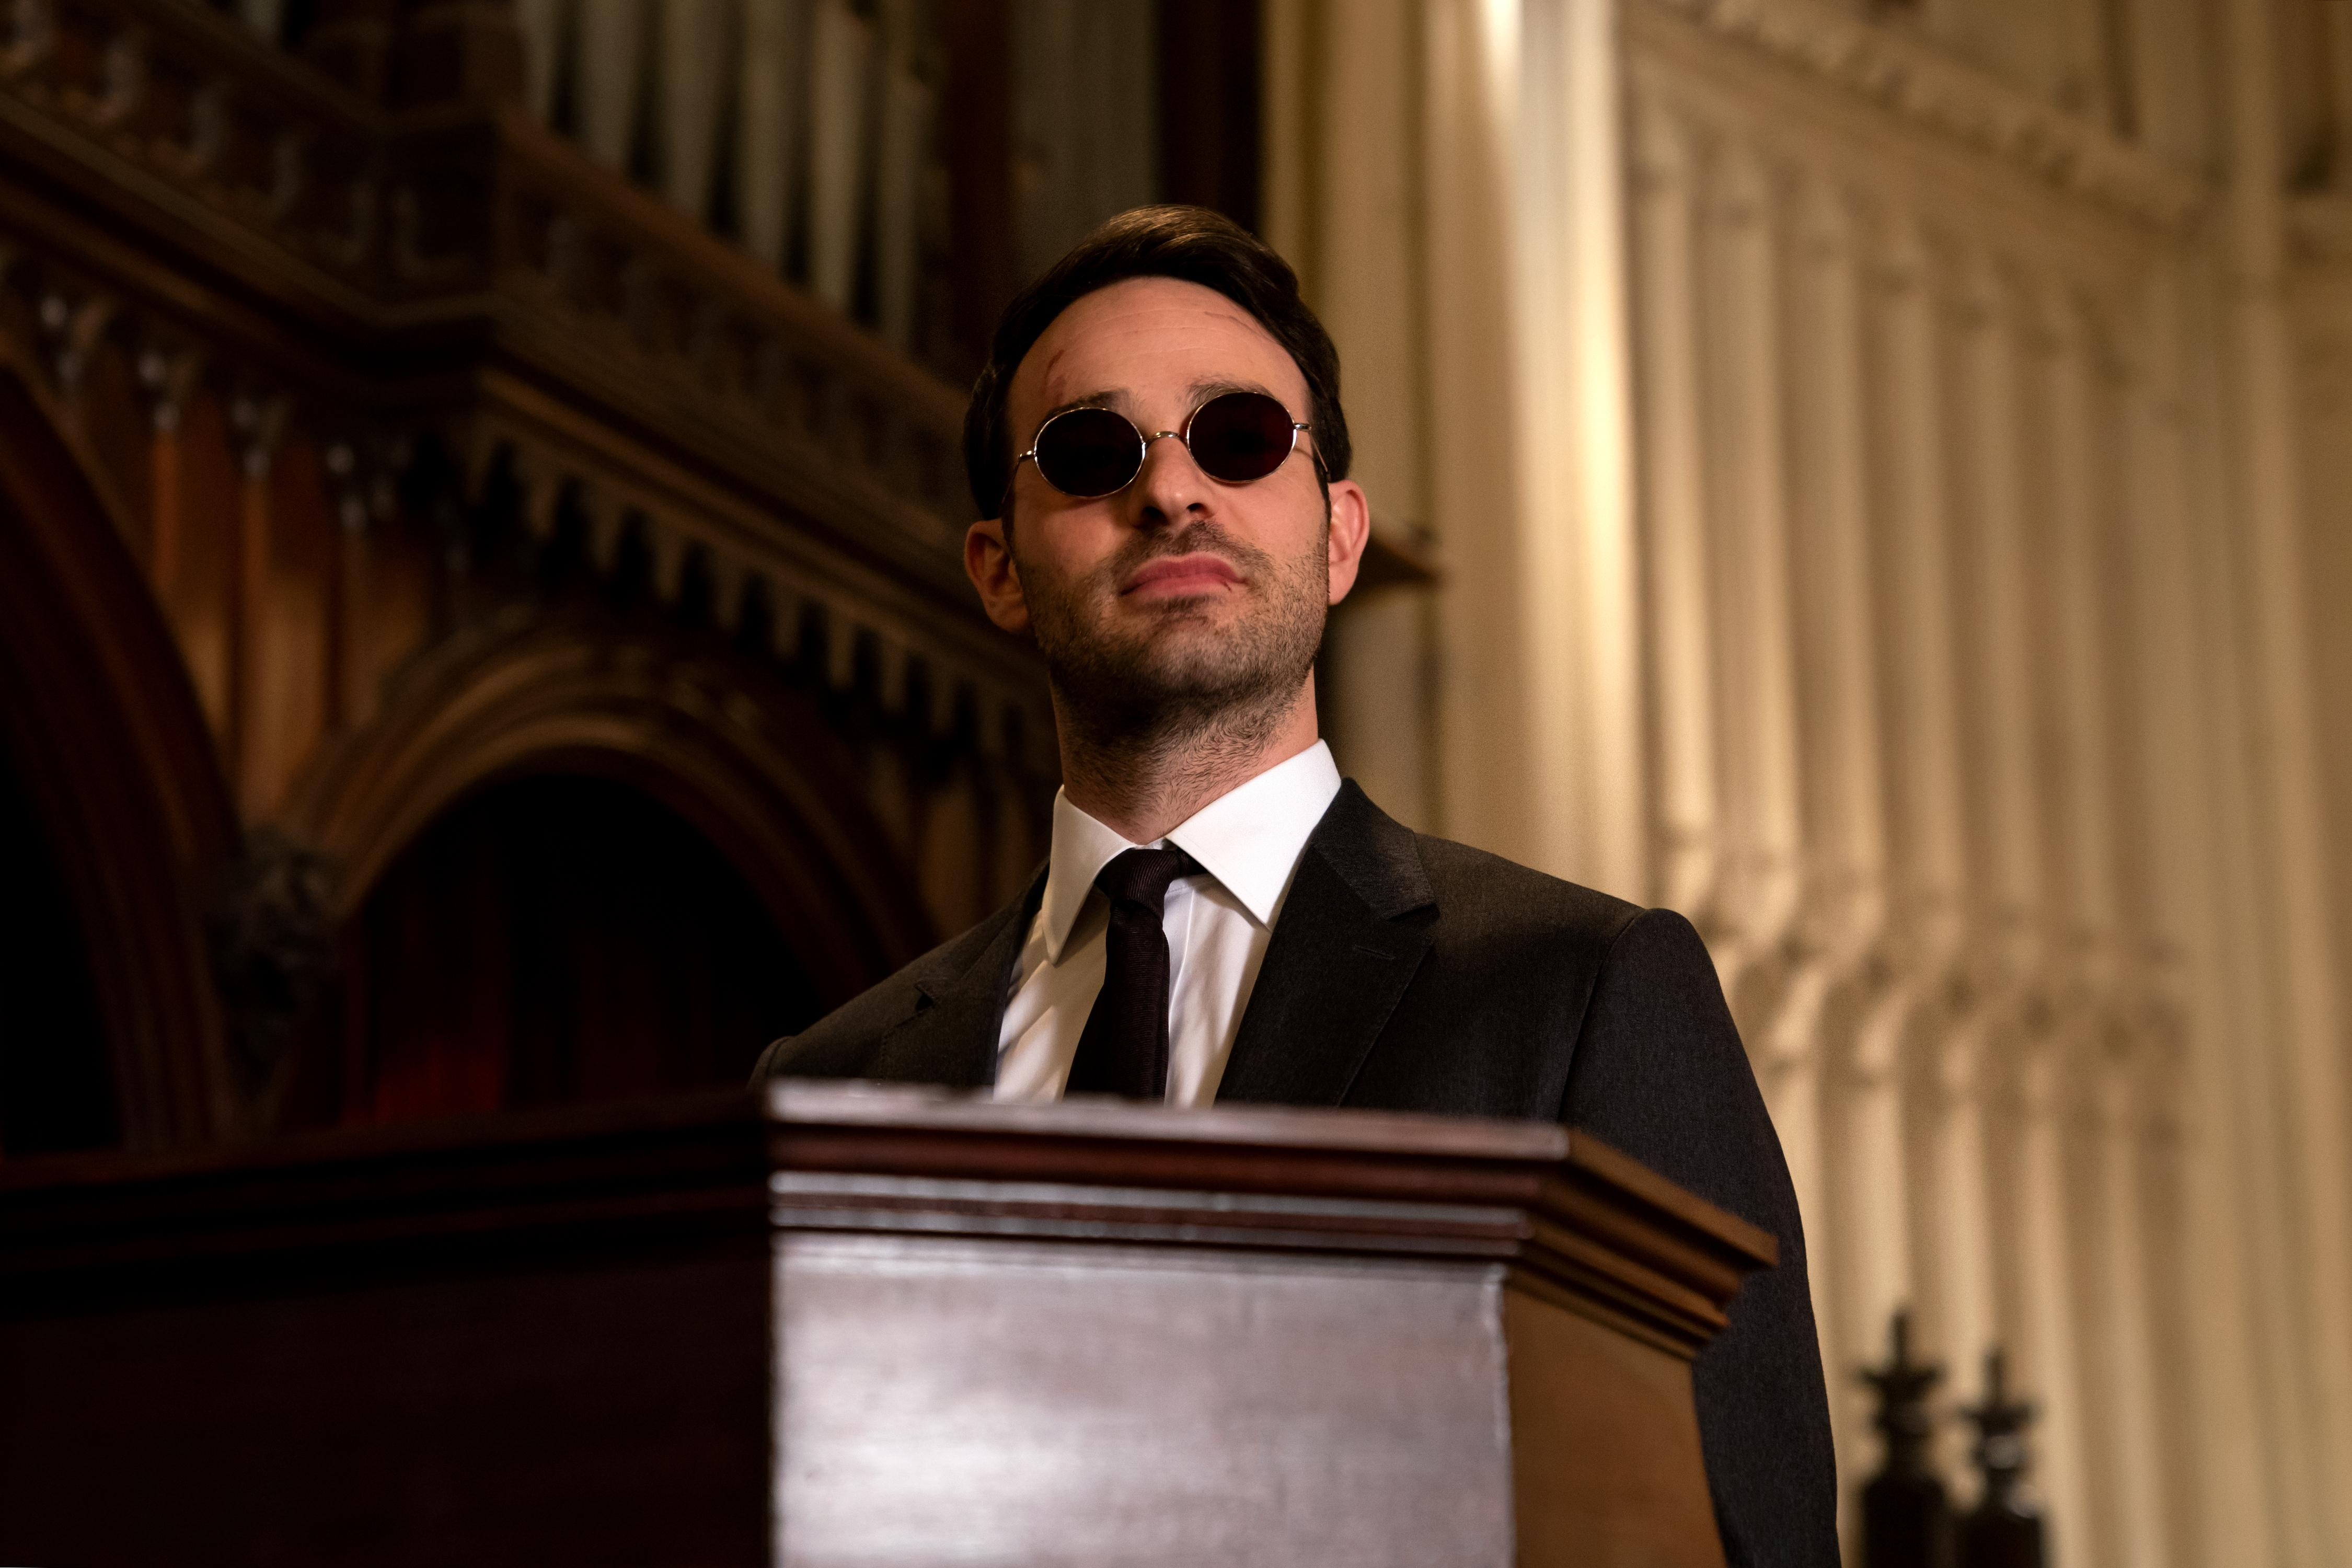 Daredevil actress: Blame Netflix for cancellation, not Marvel